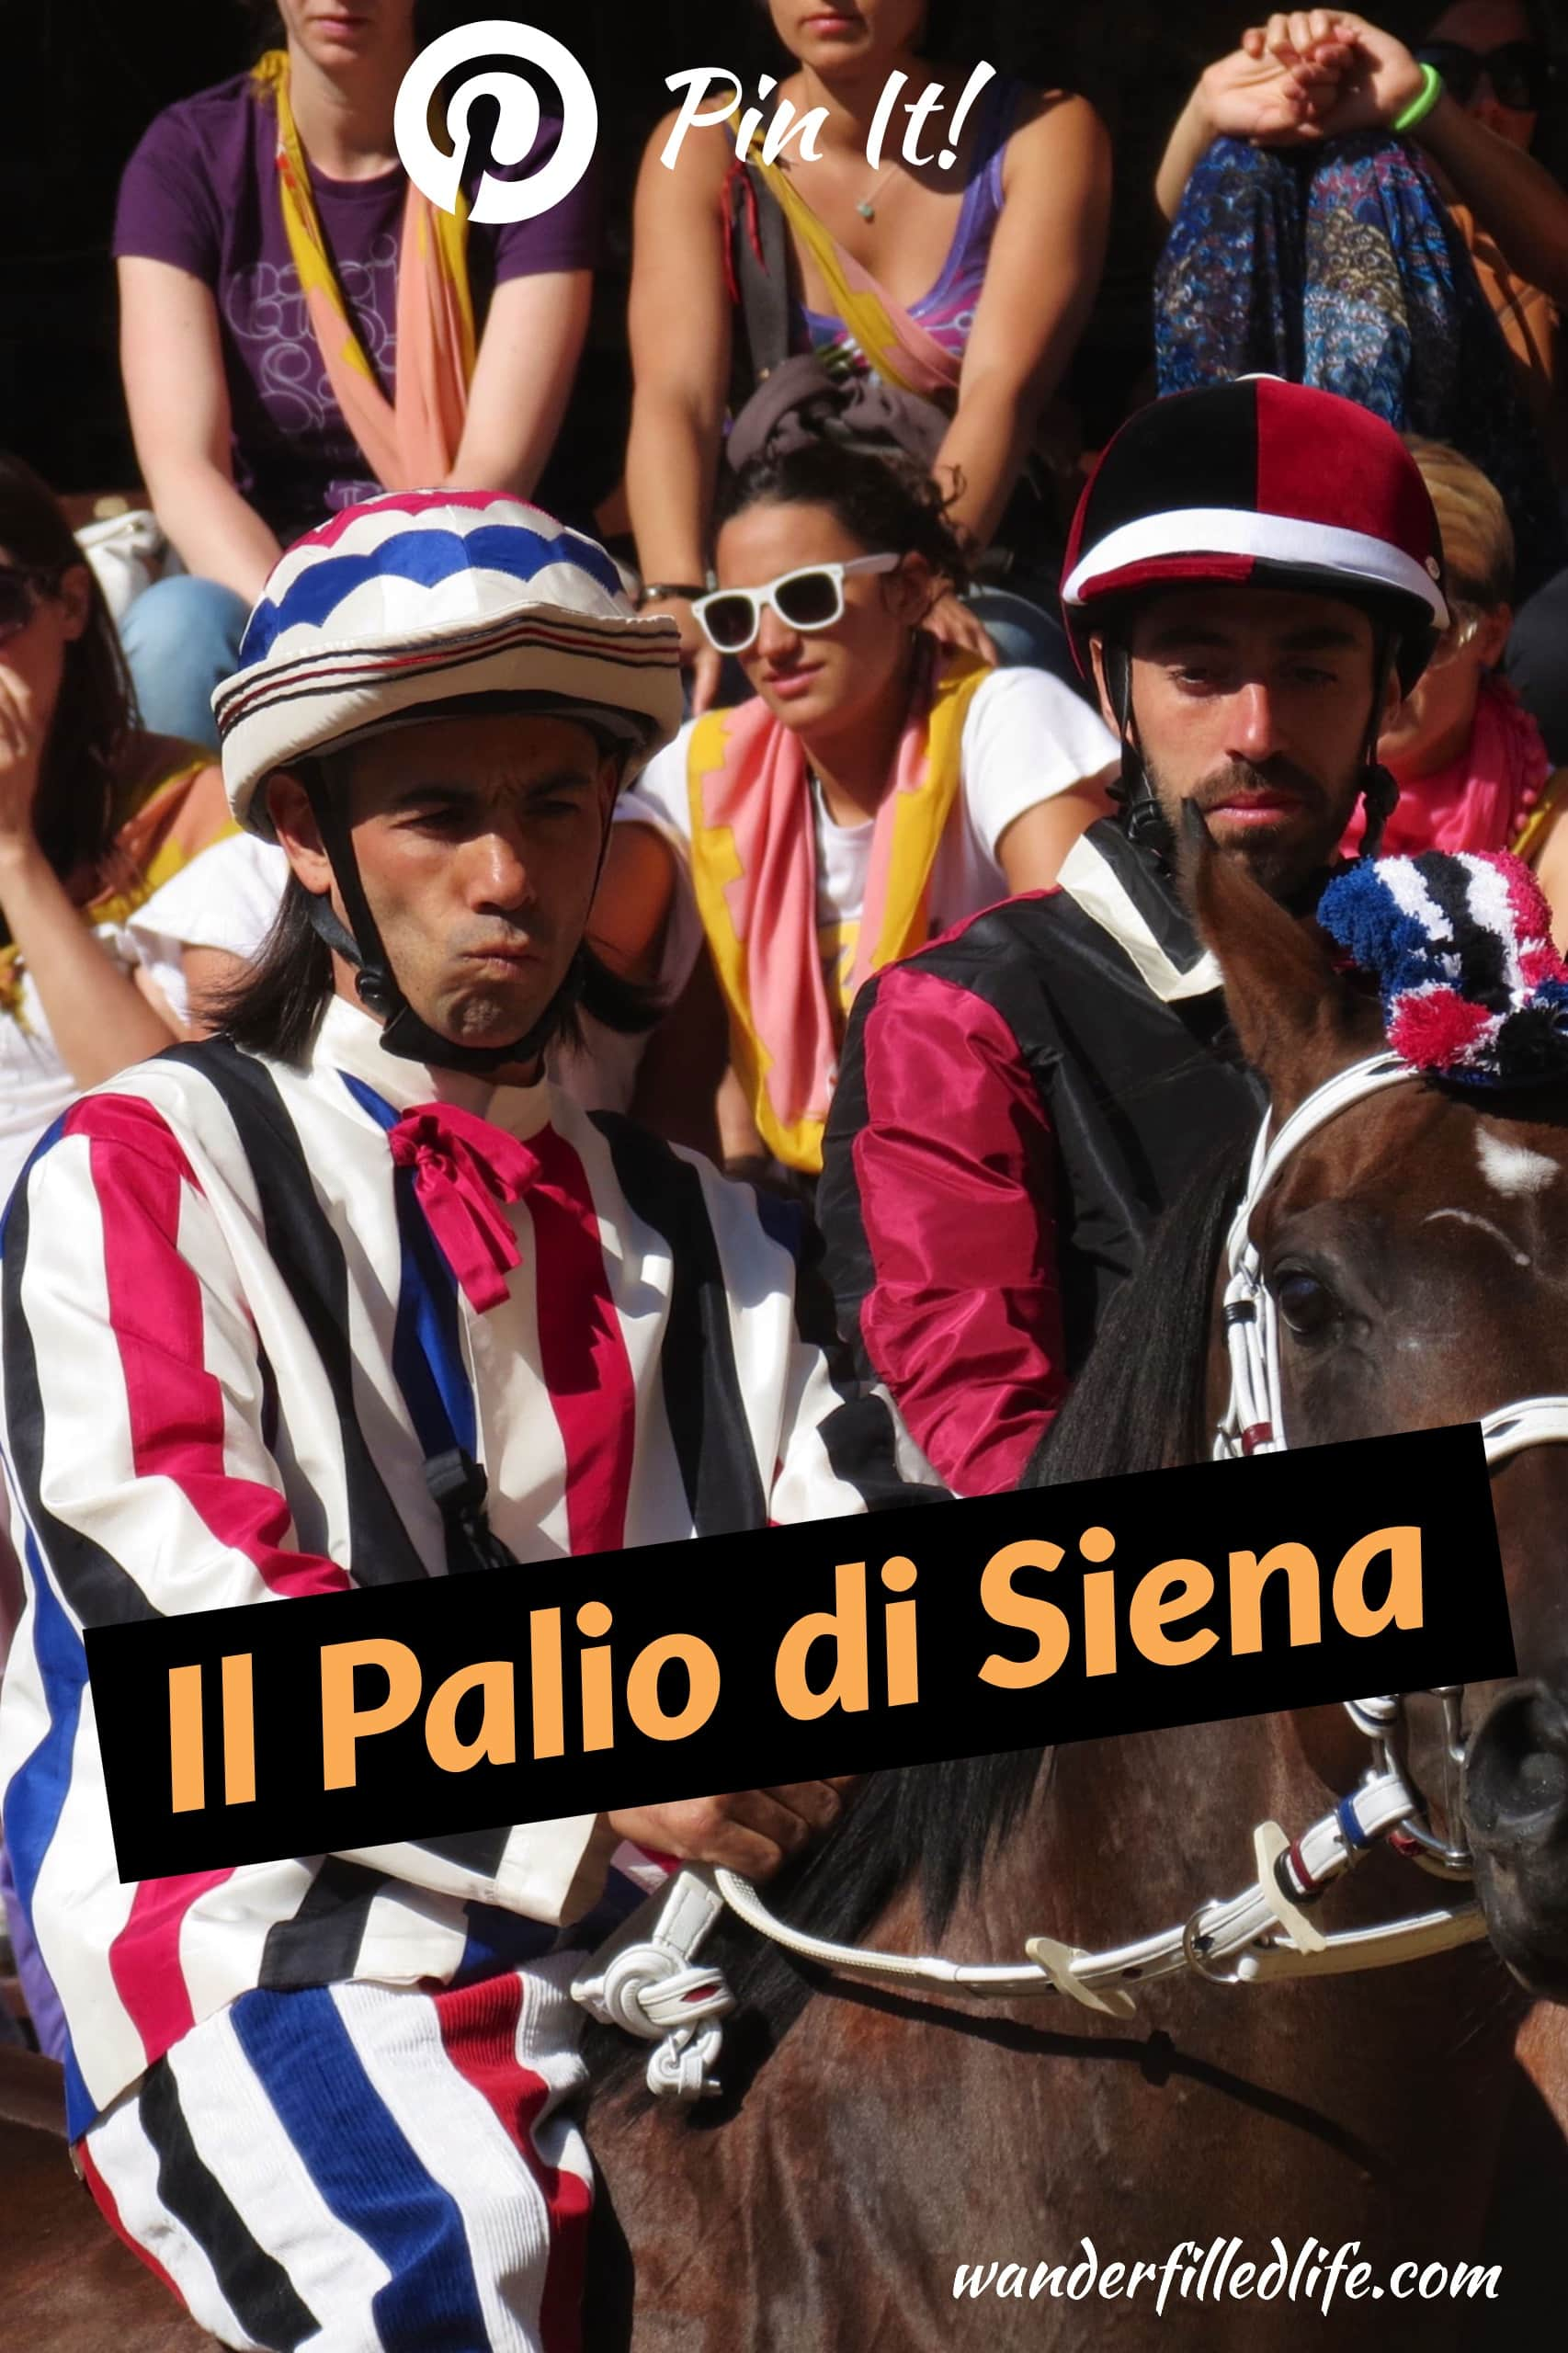 Siena's Palio, Italy's craziest horse race, is held twice a year around the city square and is not to be missed. Check out our guide on planning your trip!